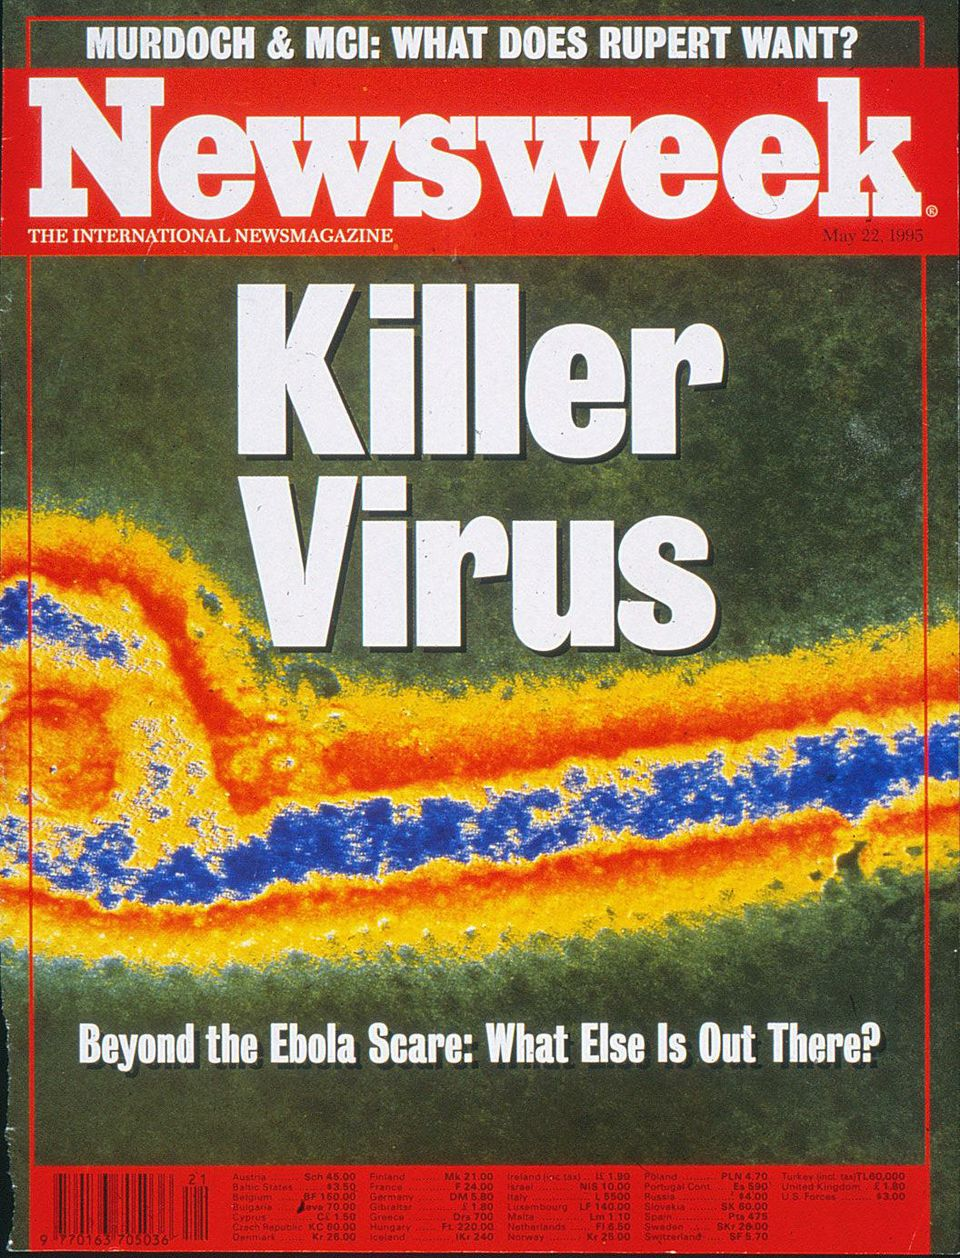 Newsweek headline declared KILLER VIRUS.